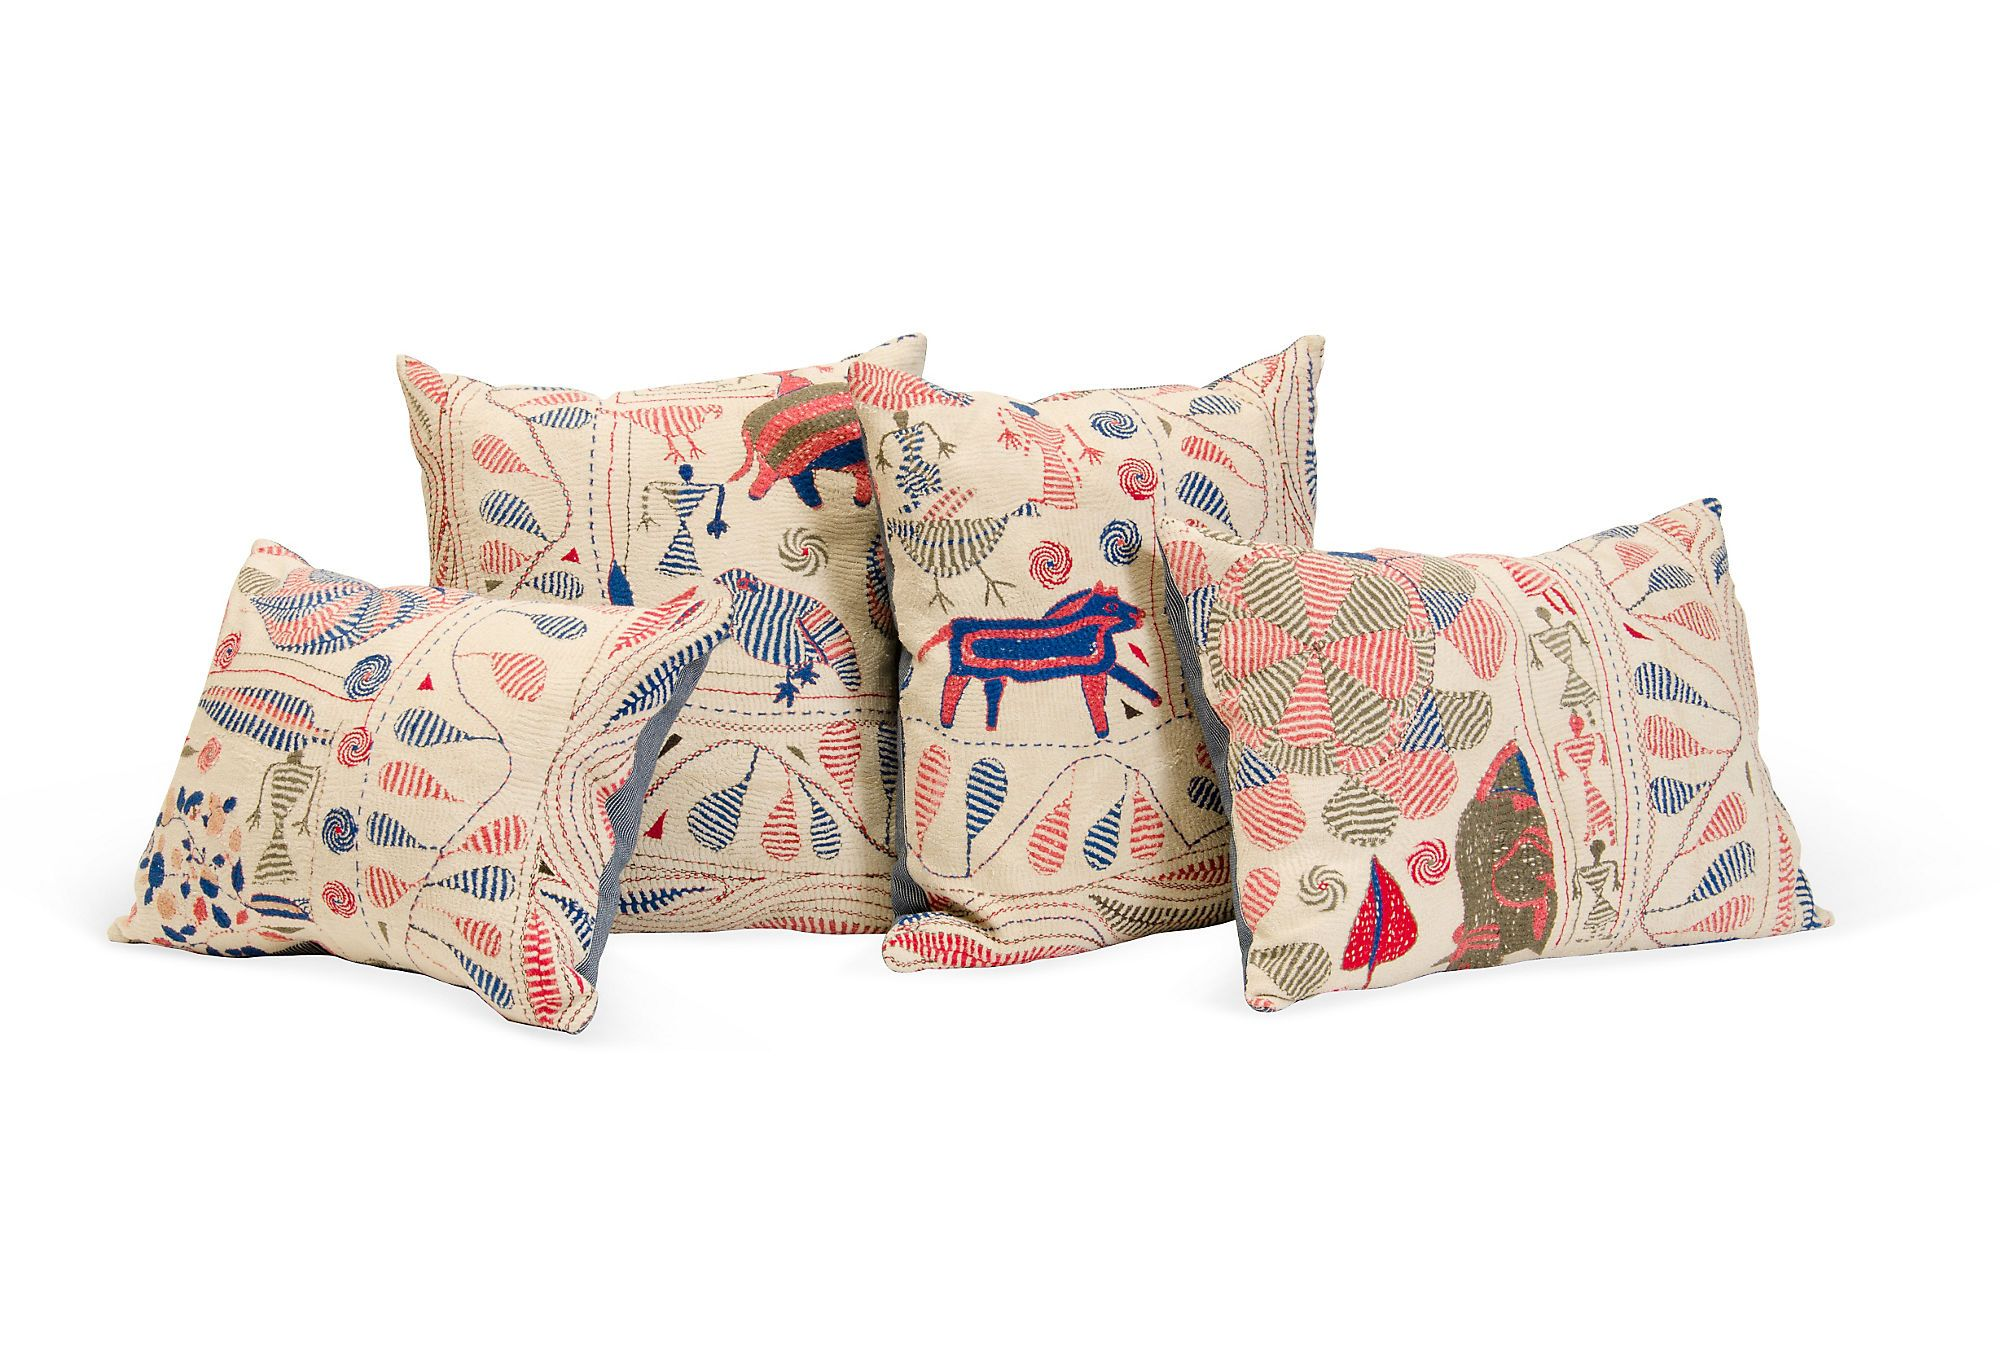 Vintage Kantha Quilt Pillows